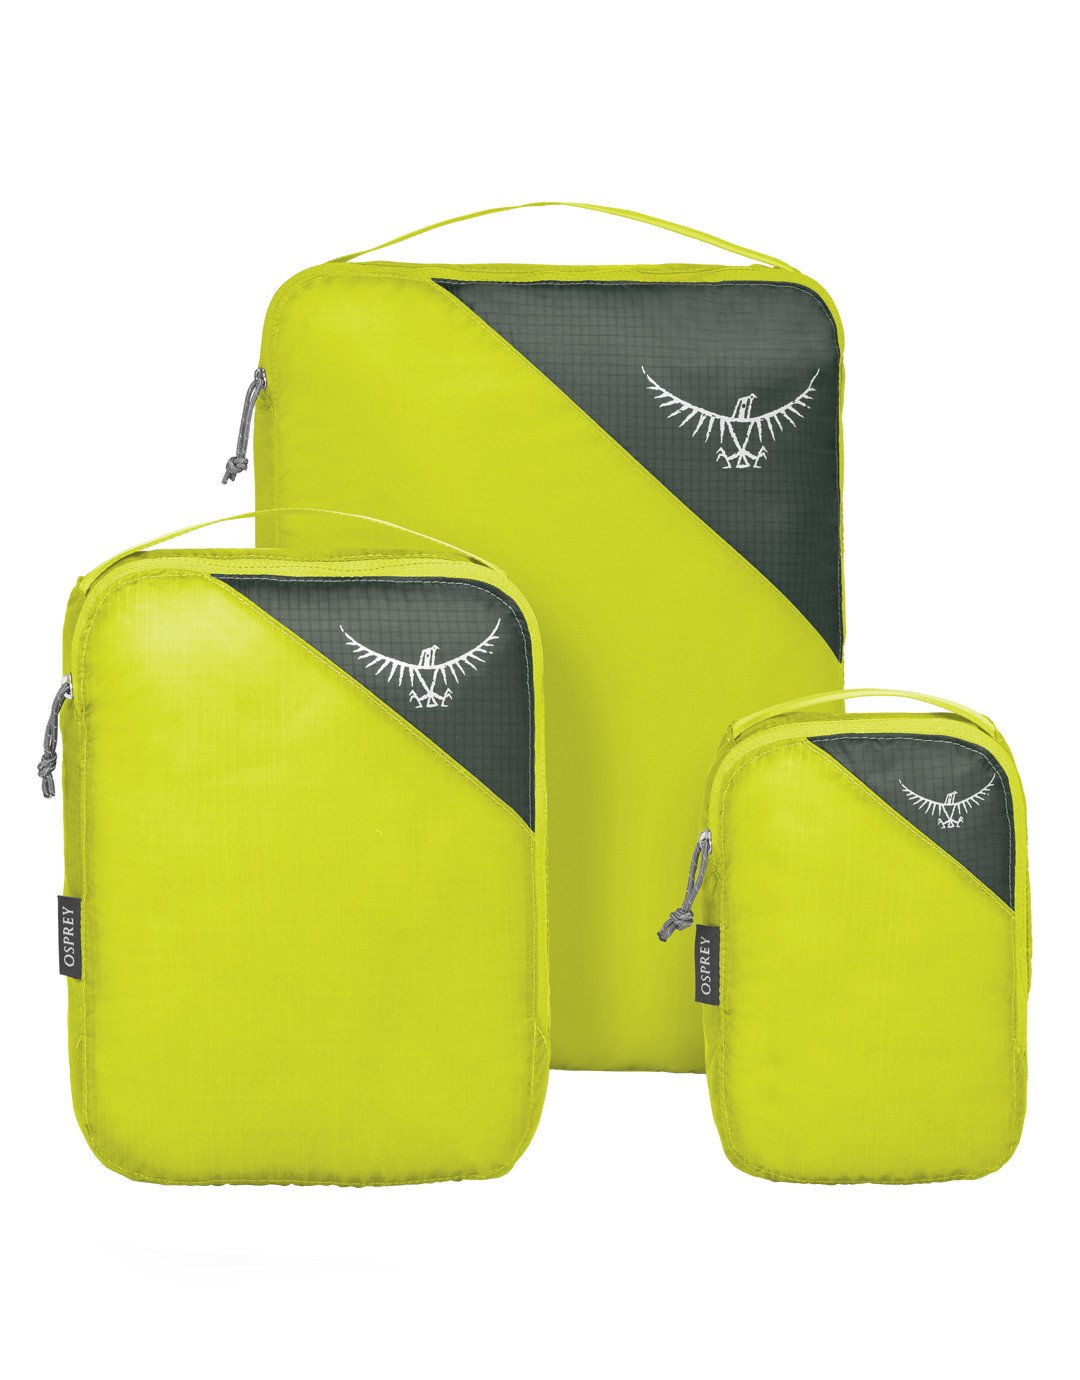 Ultralight Packing Cube Set - Electric Lime